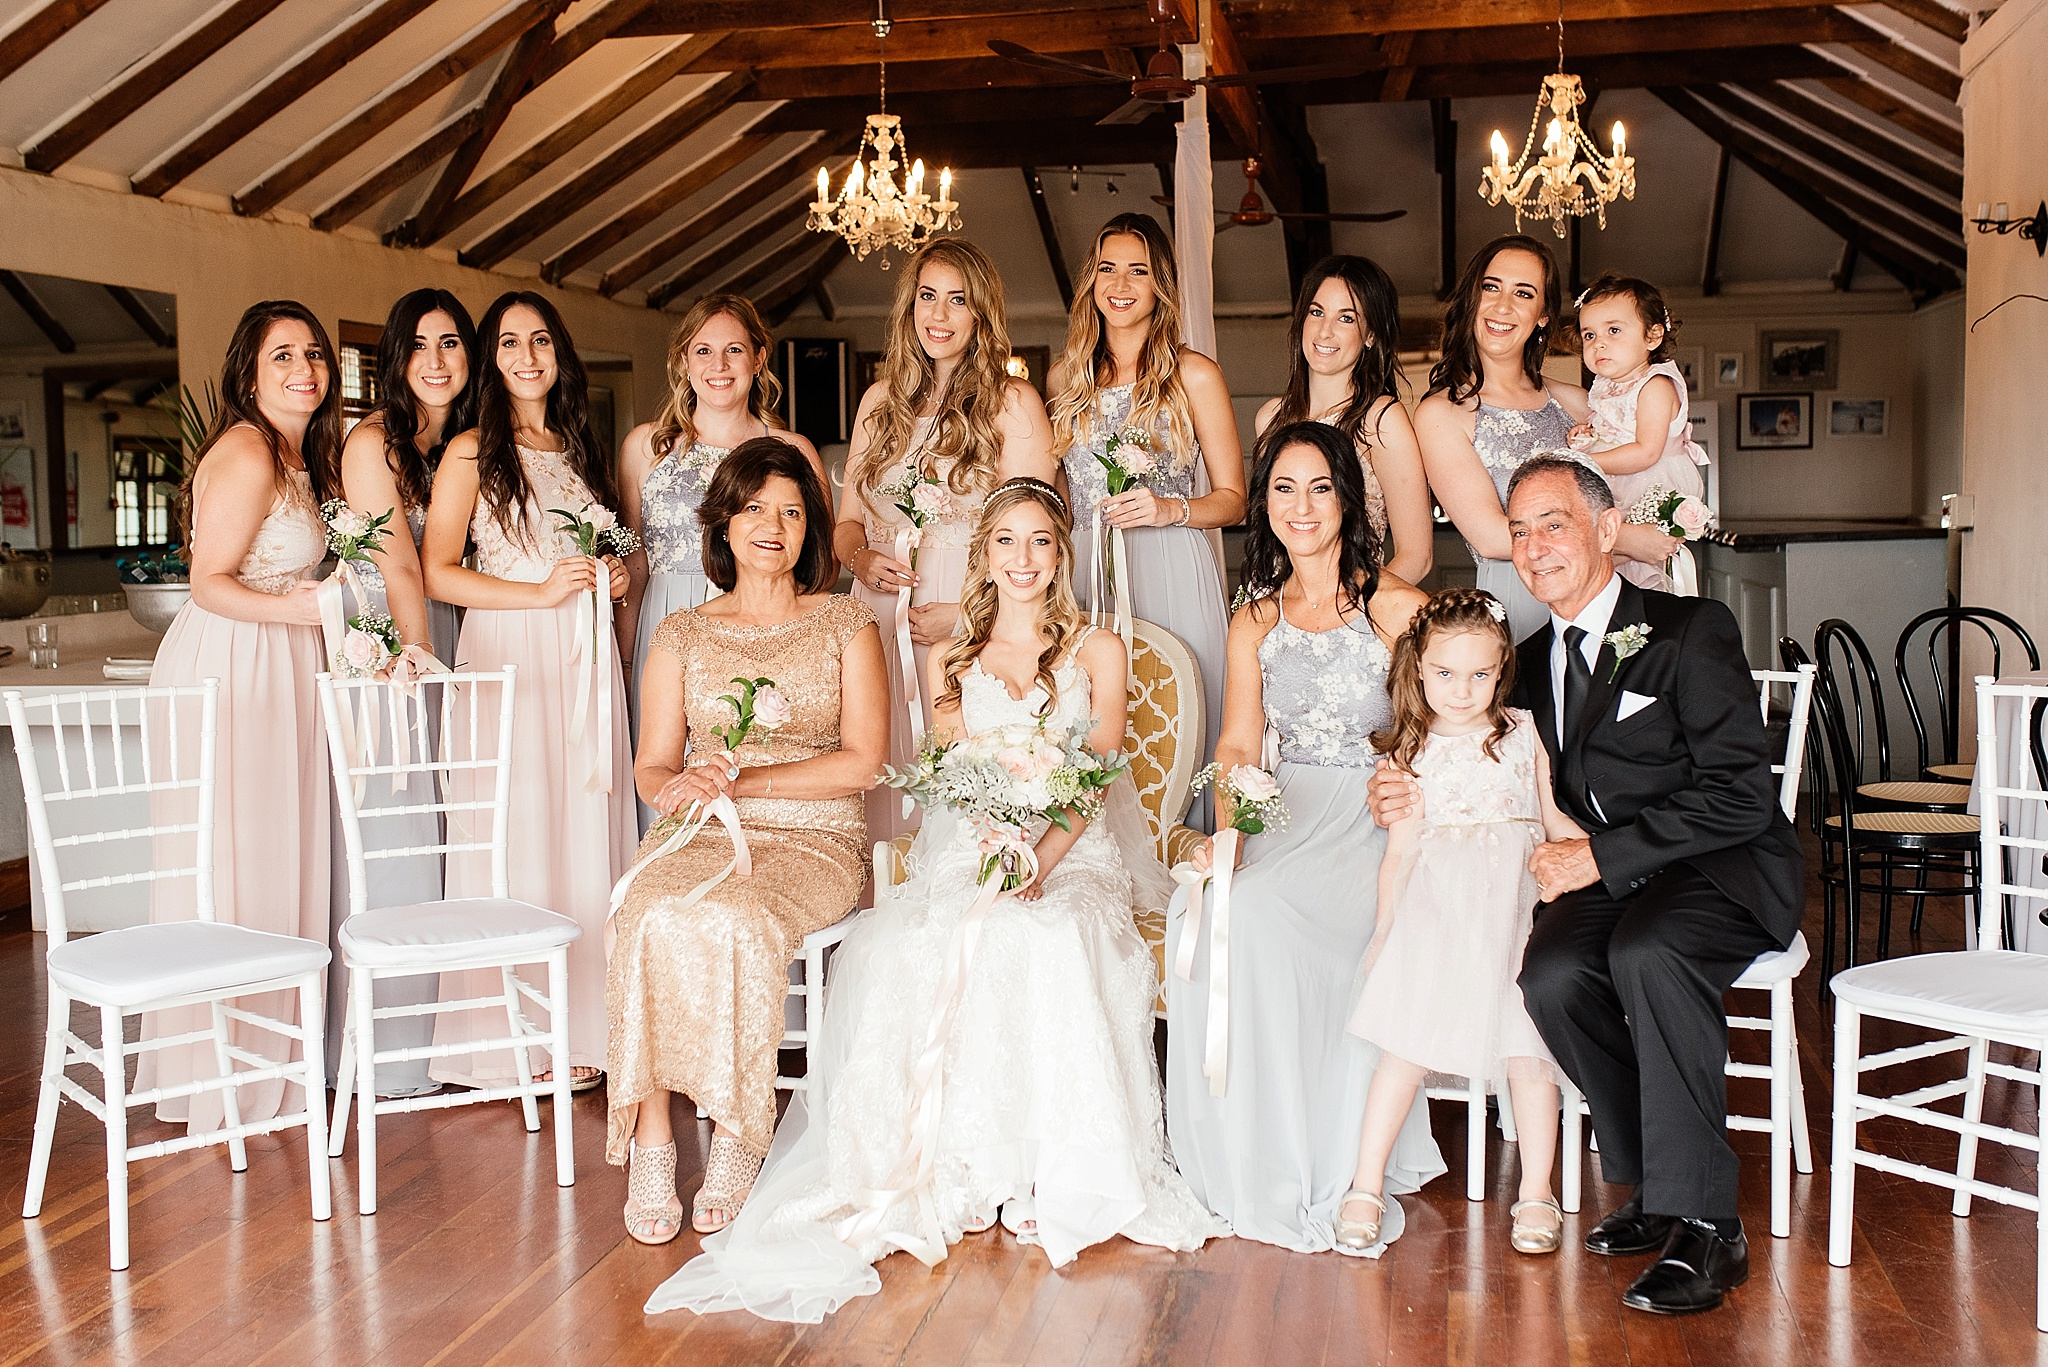 Cape Town Wedding Photographer Darren Bester - SuikerBossie - Stephen and Mikaela_0018.jpg